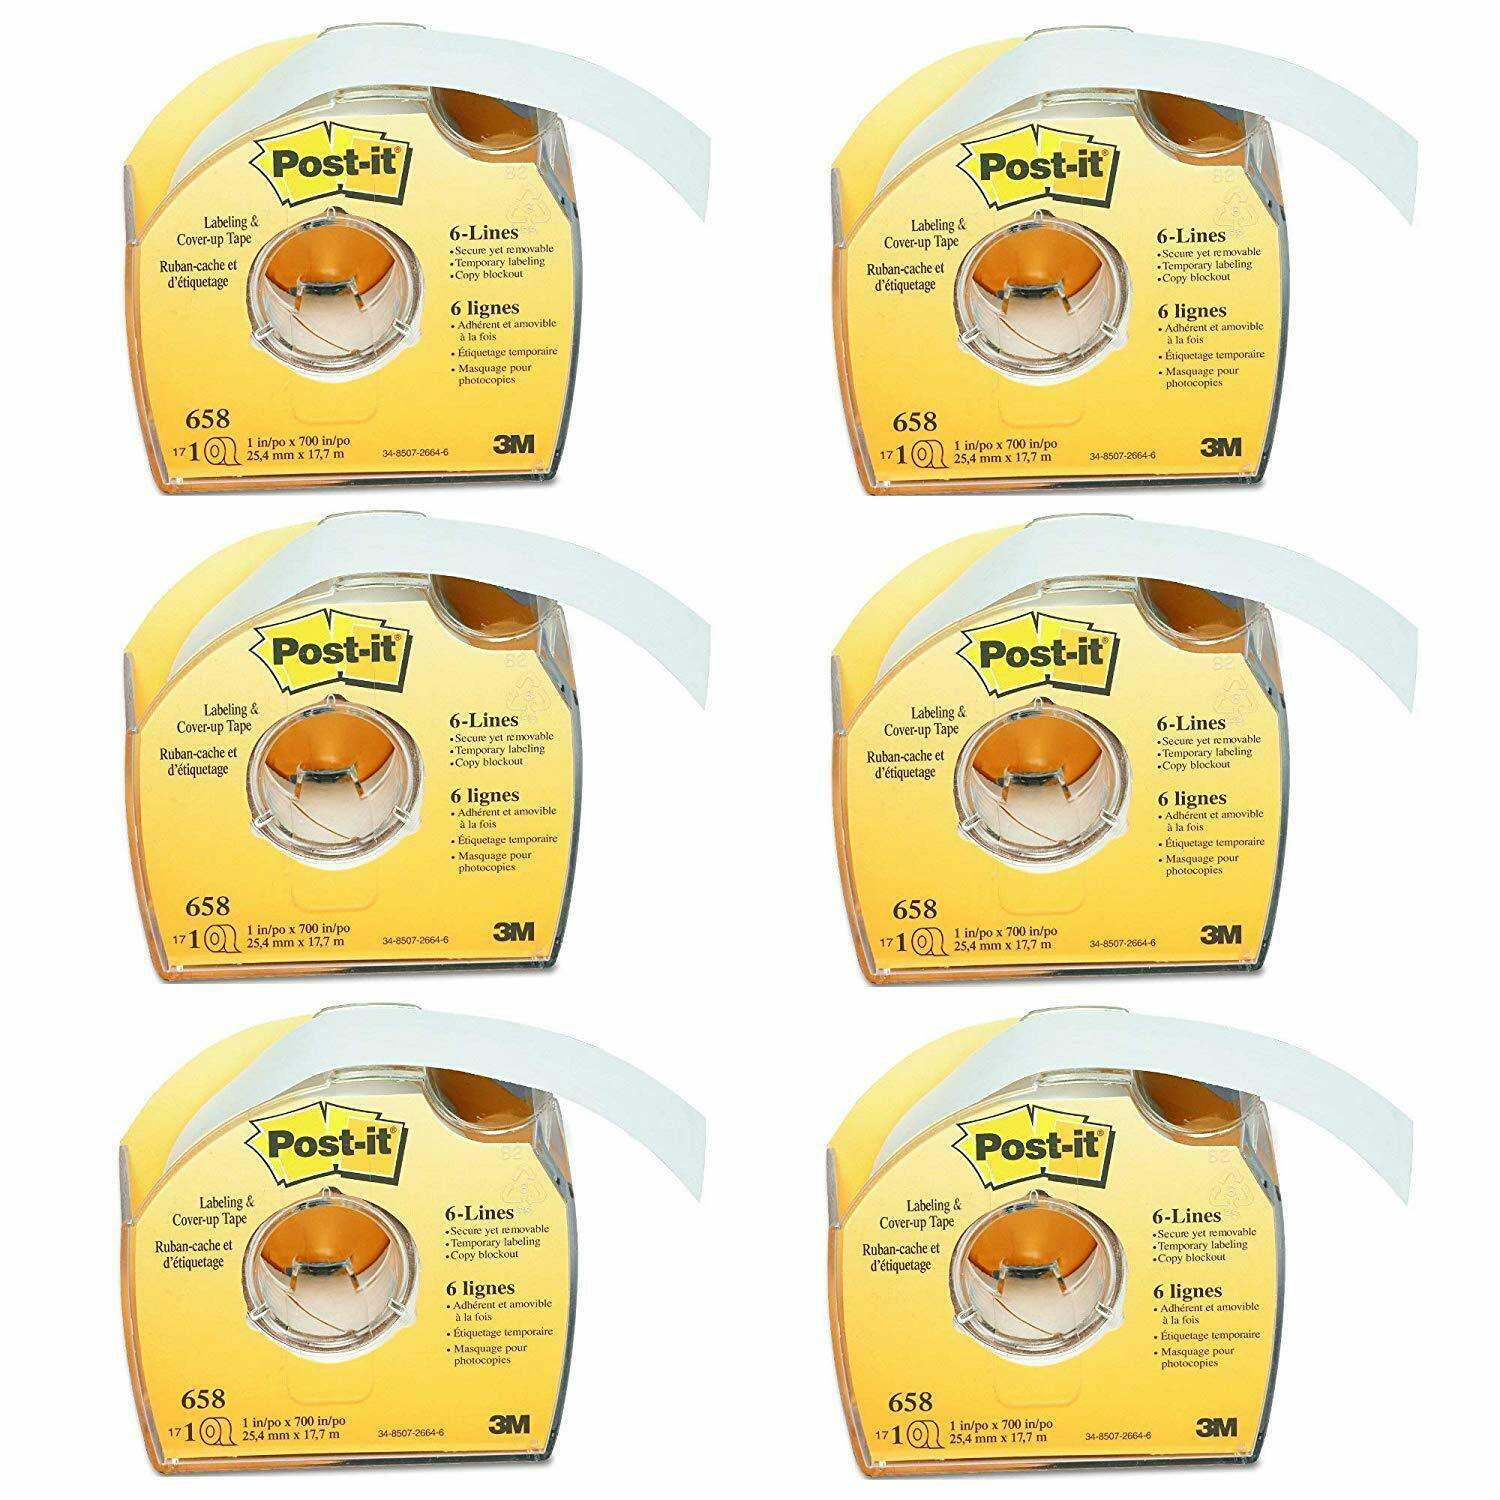 1//6-inch x 700 Inches Post-it Labeling and Cover-Up Tape 651